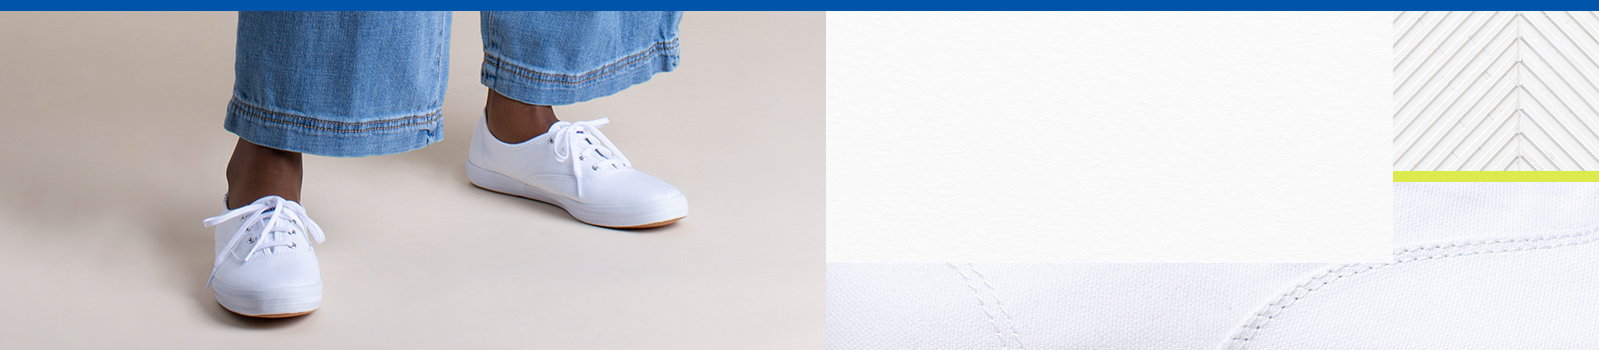 Women's legs wearing white pants and white Keds Champion sneakers